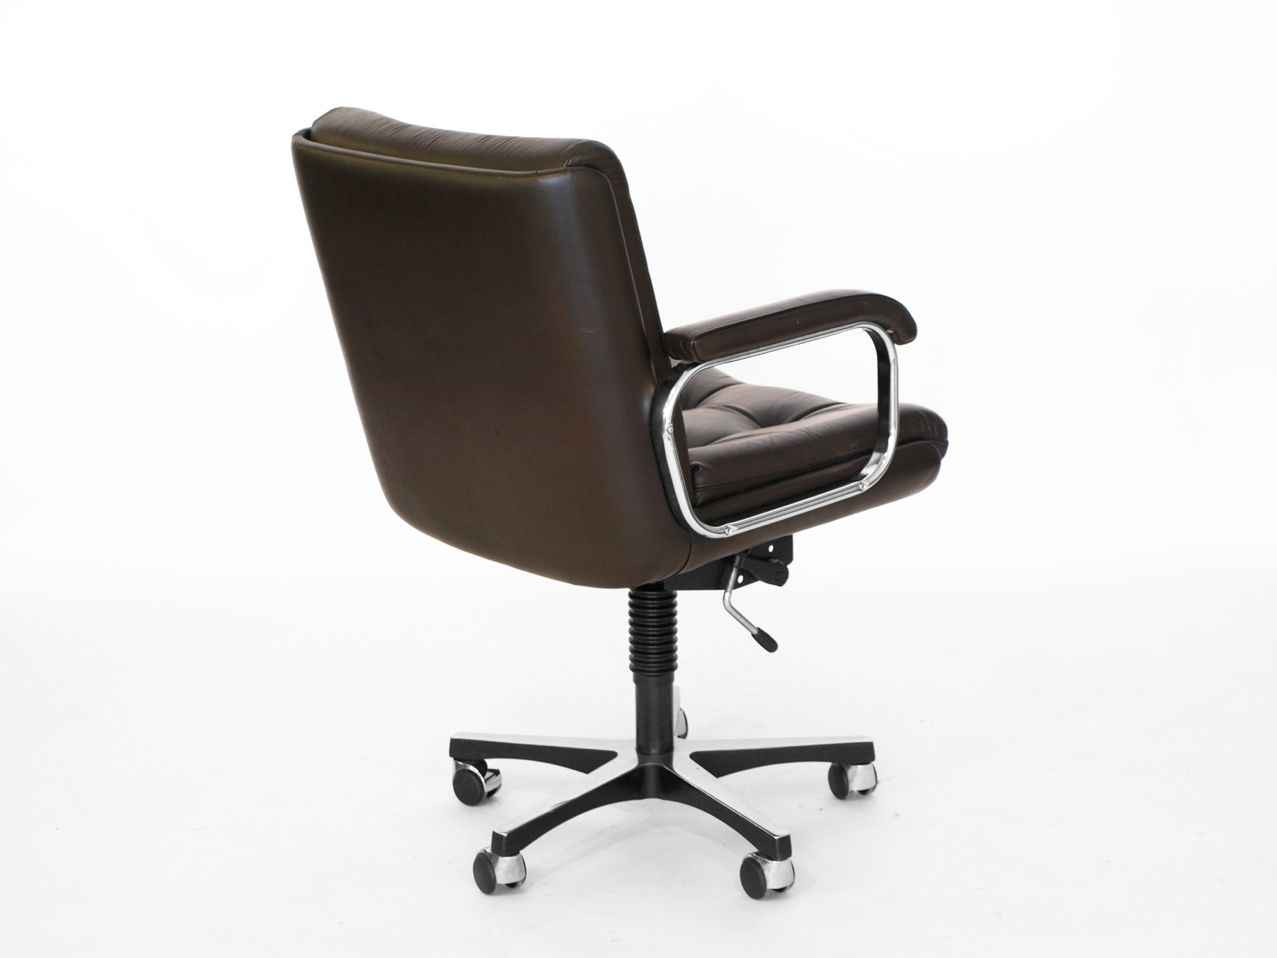 norwegian vintage office chair from ring mekanikk chairs for sale g